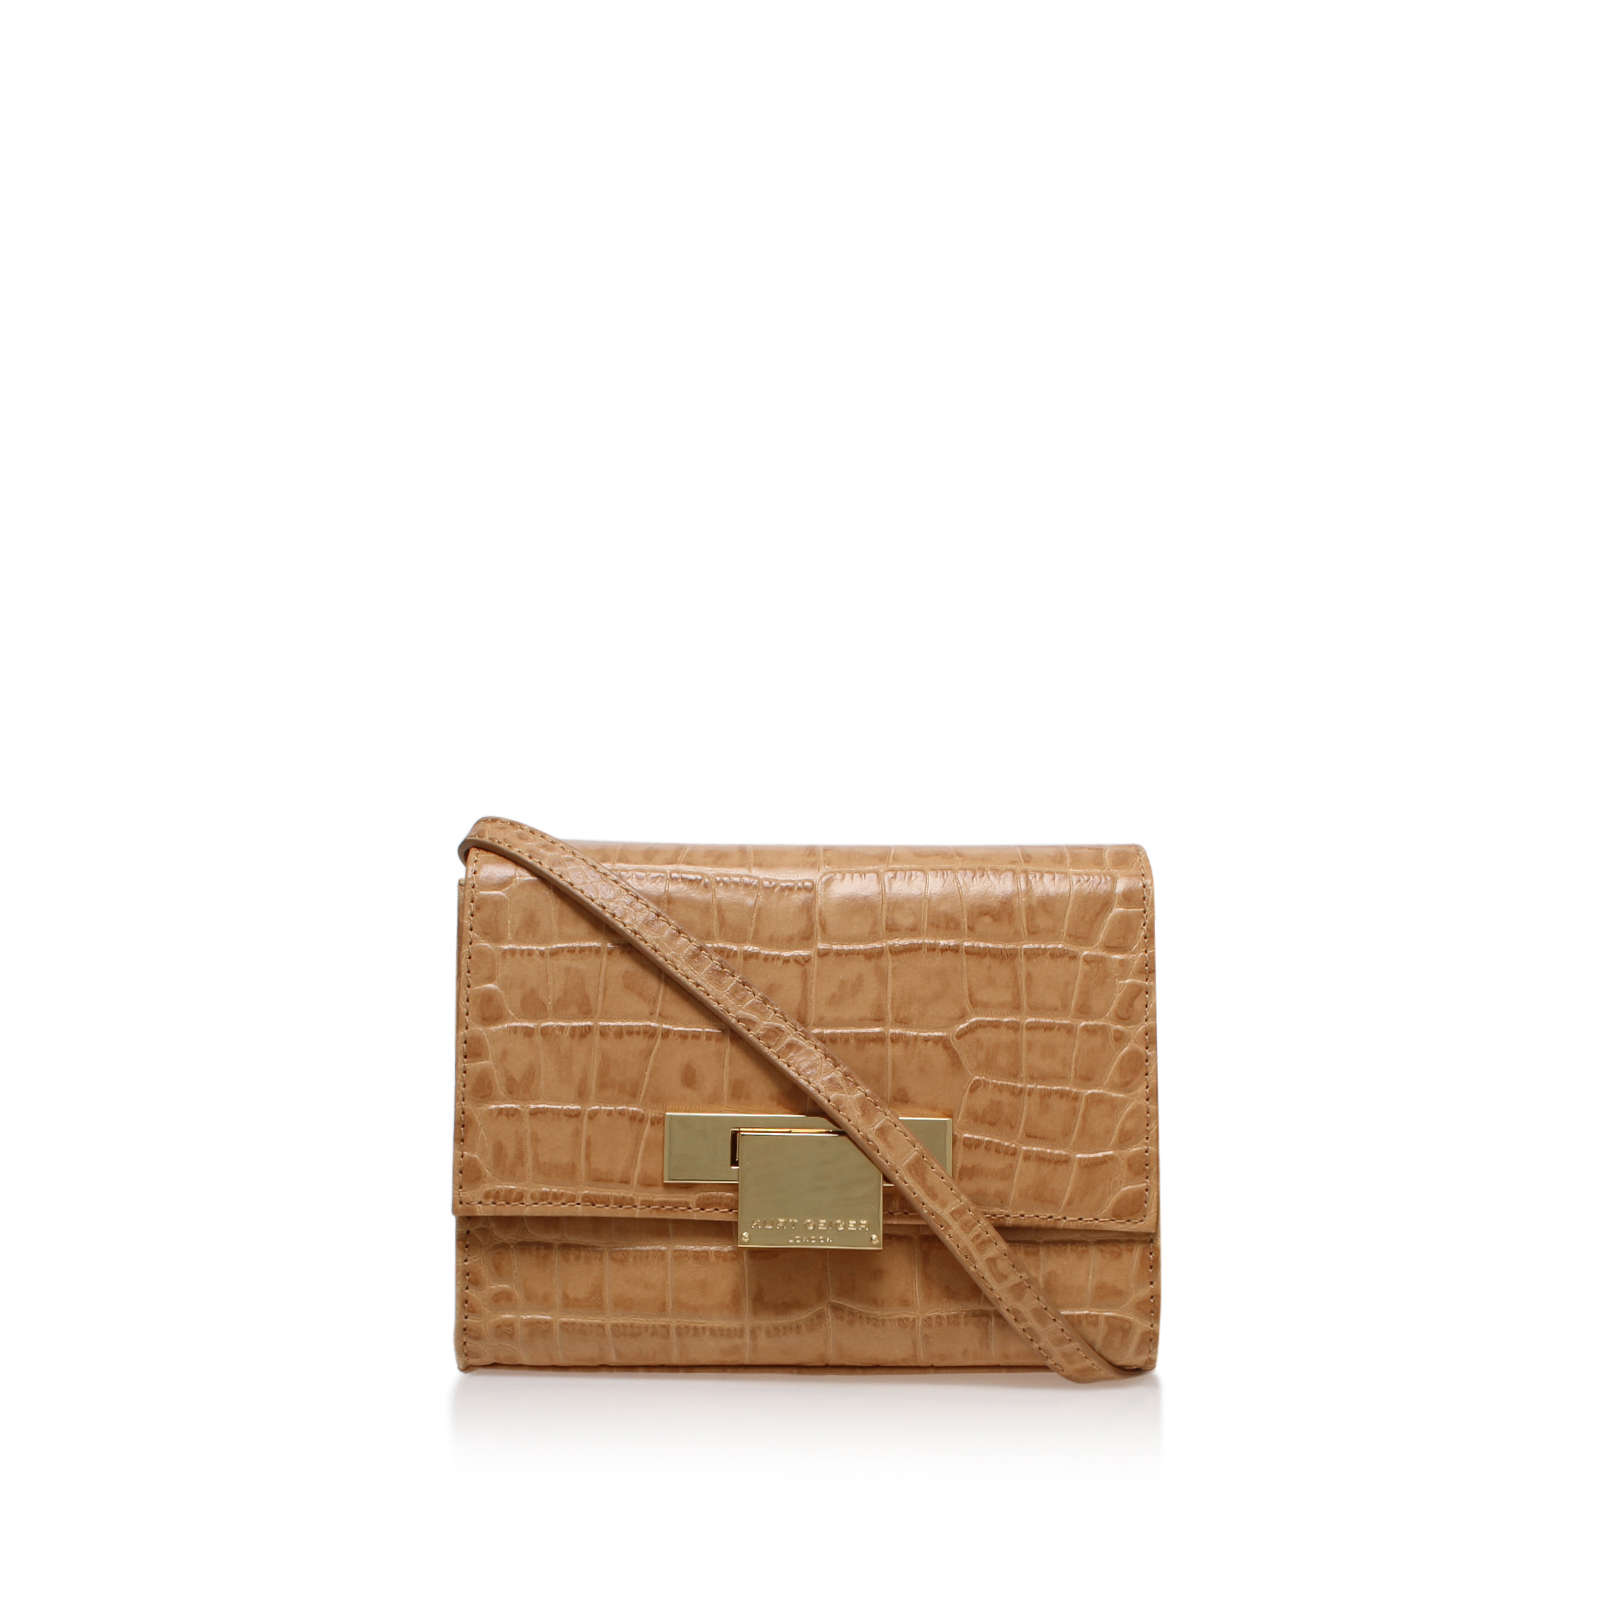 CROC ANNIE CROSS BODY